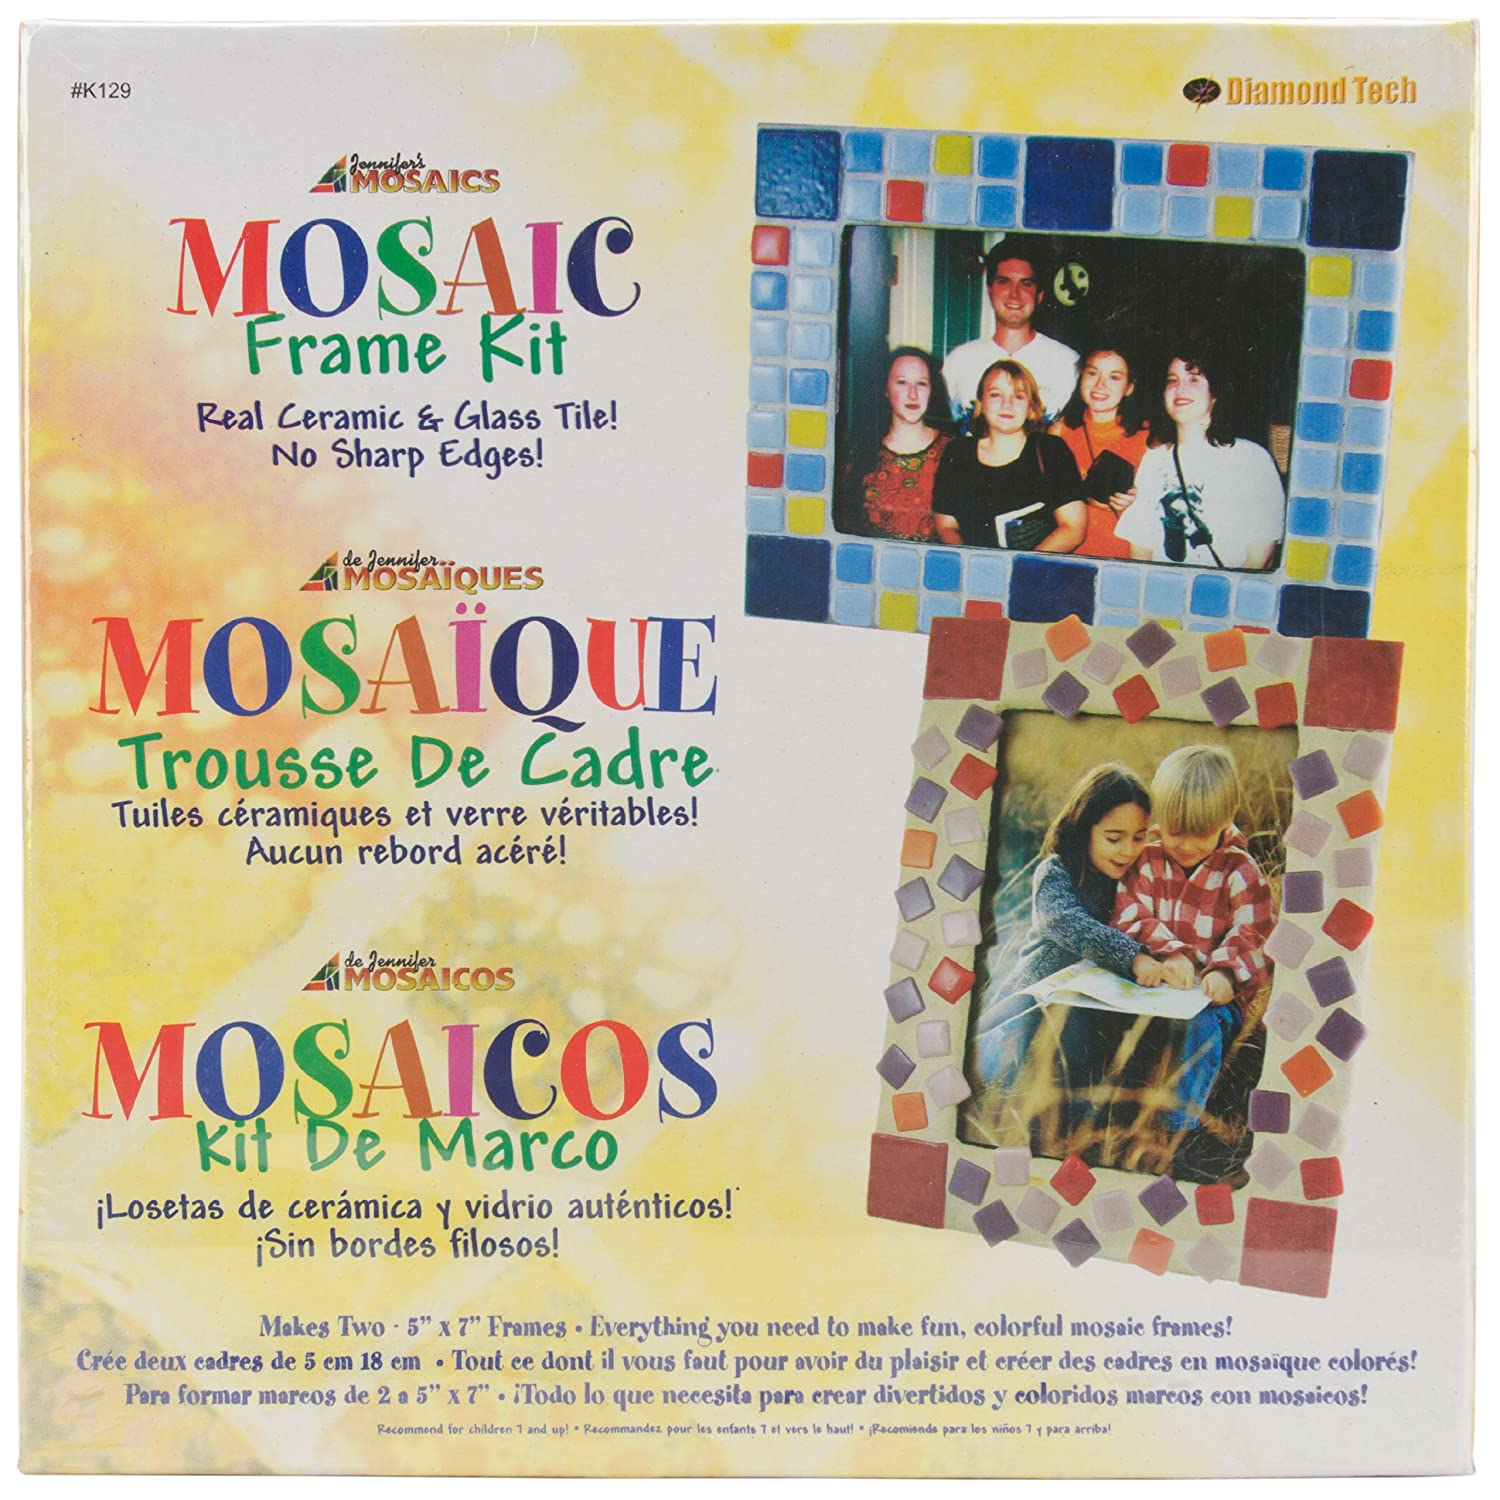 amazoncom jennifers mosaics mosaic picture frame kit makes 2 frames arts crafts sewing - Mosaic Picture Frames